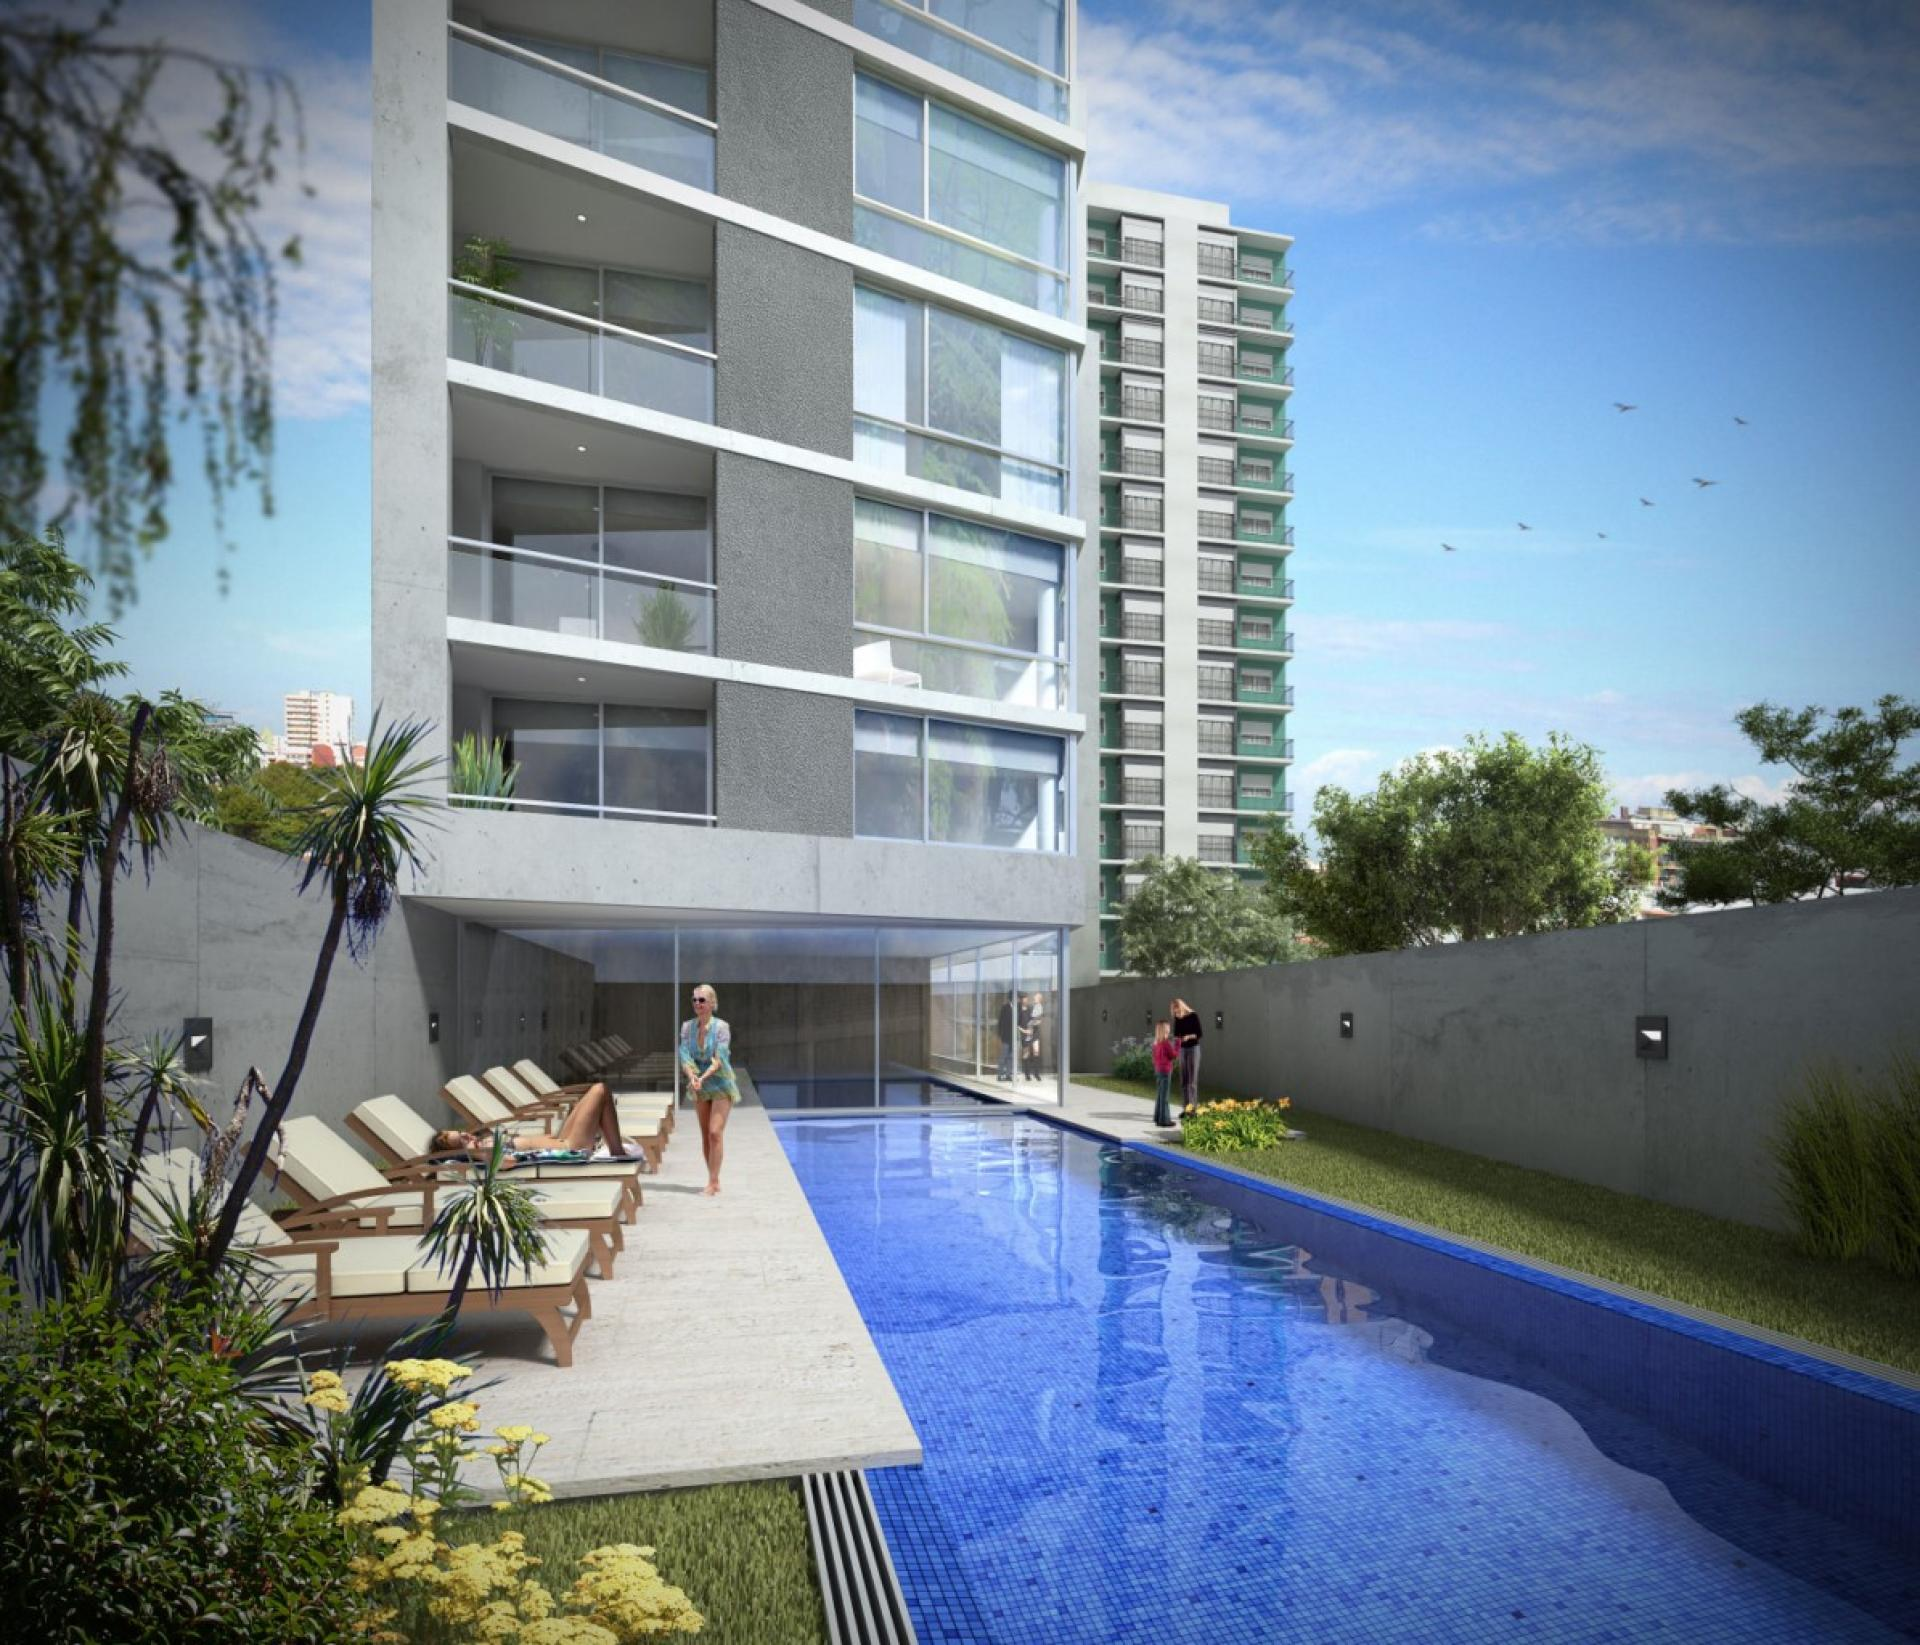 Piscinas Cordoba Capital Departamento En Venta En Cordoba 4340 Palermo Capital Federal